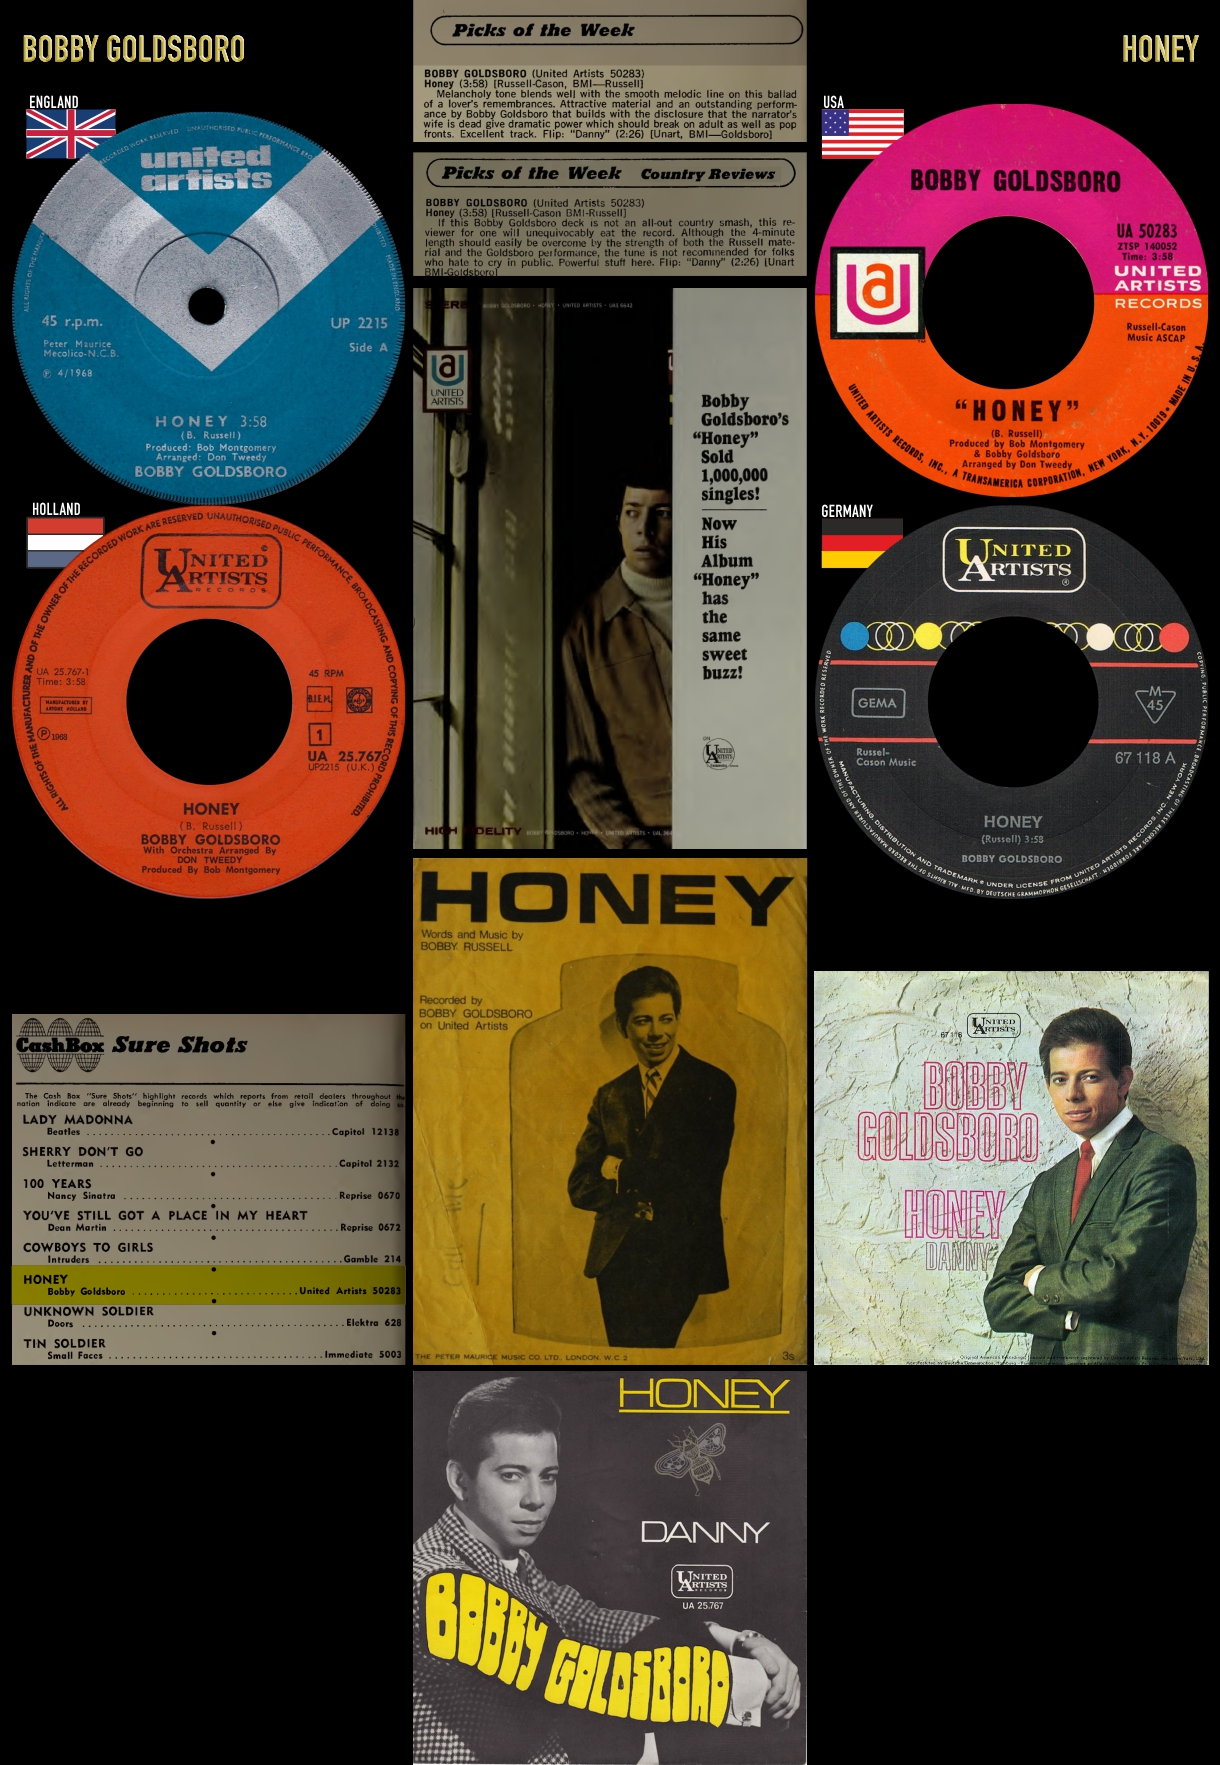 680323_Bobby Goldsboro_Honey